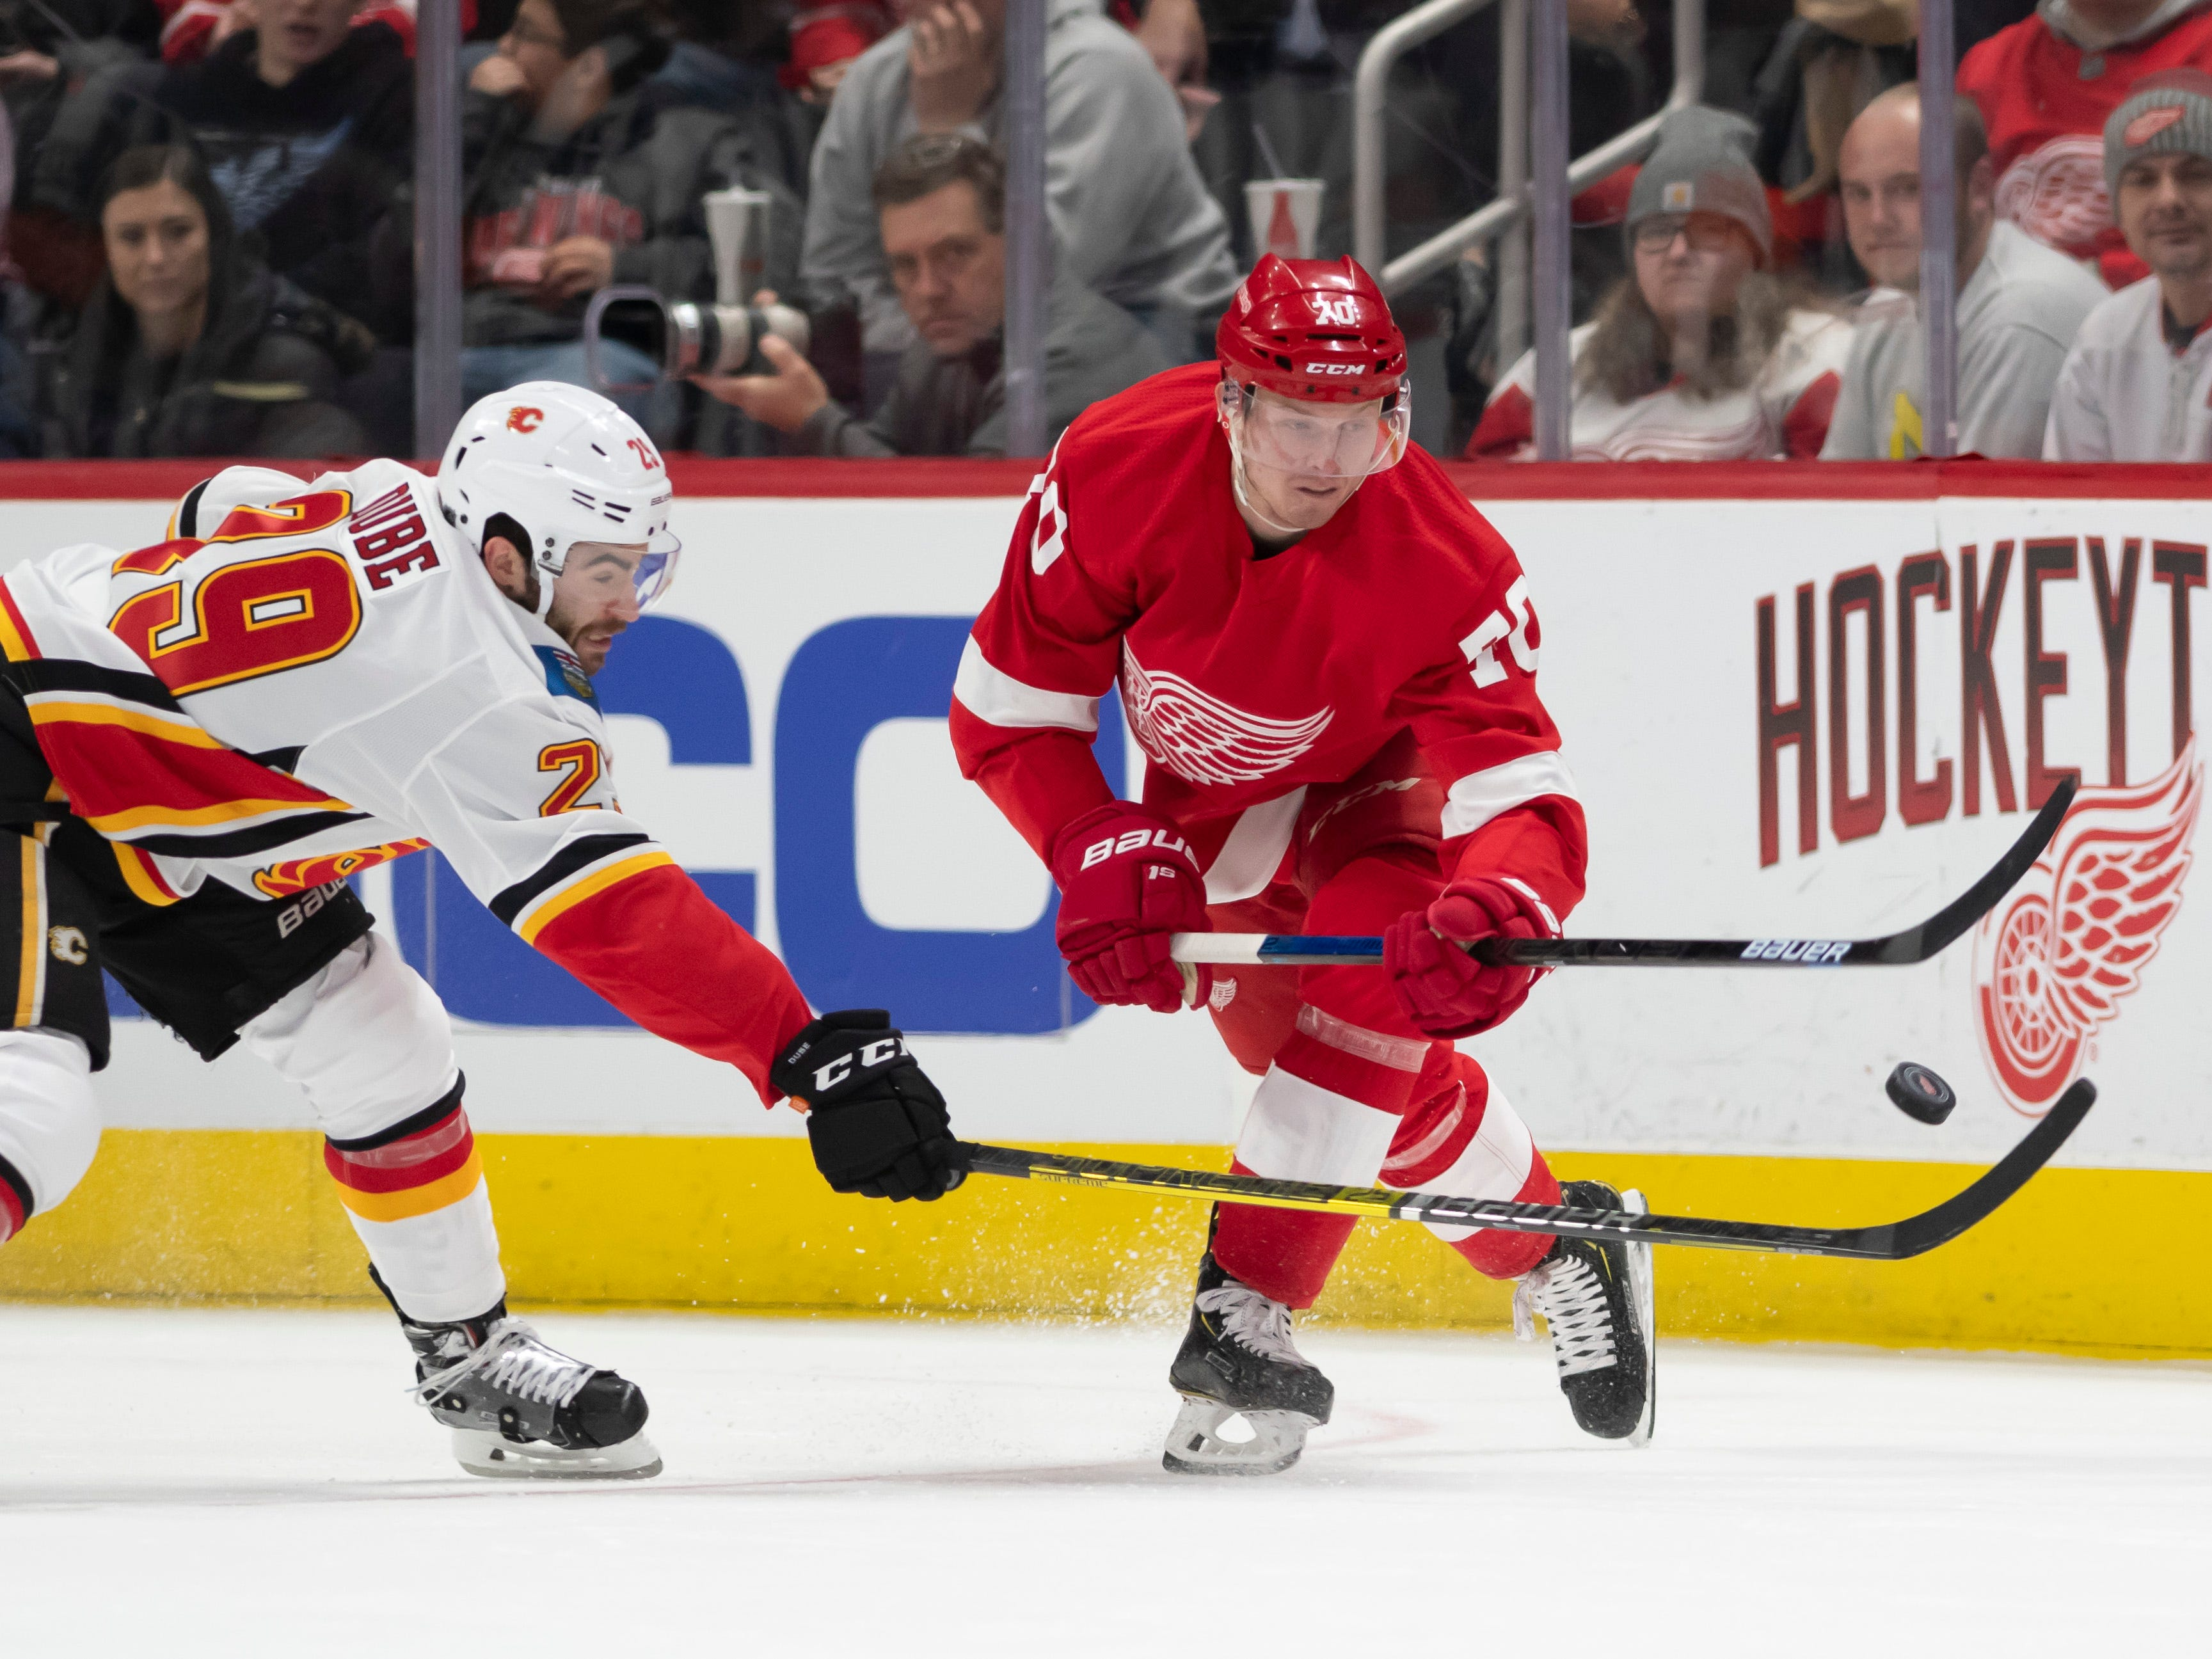 Calgary center Dillon Dube and Detroit center Christoffer Ehn battle for the puck in the first period.